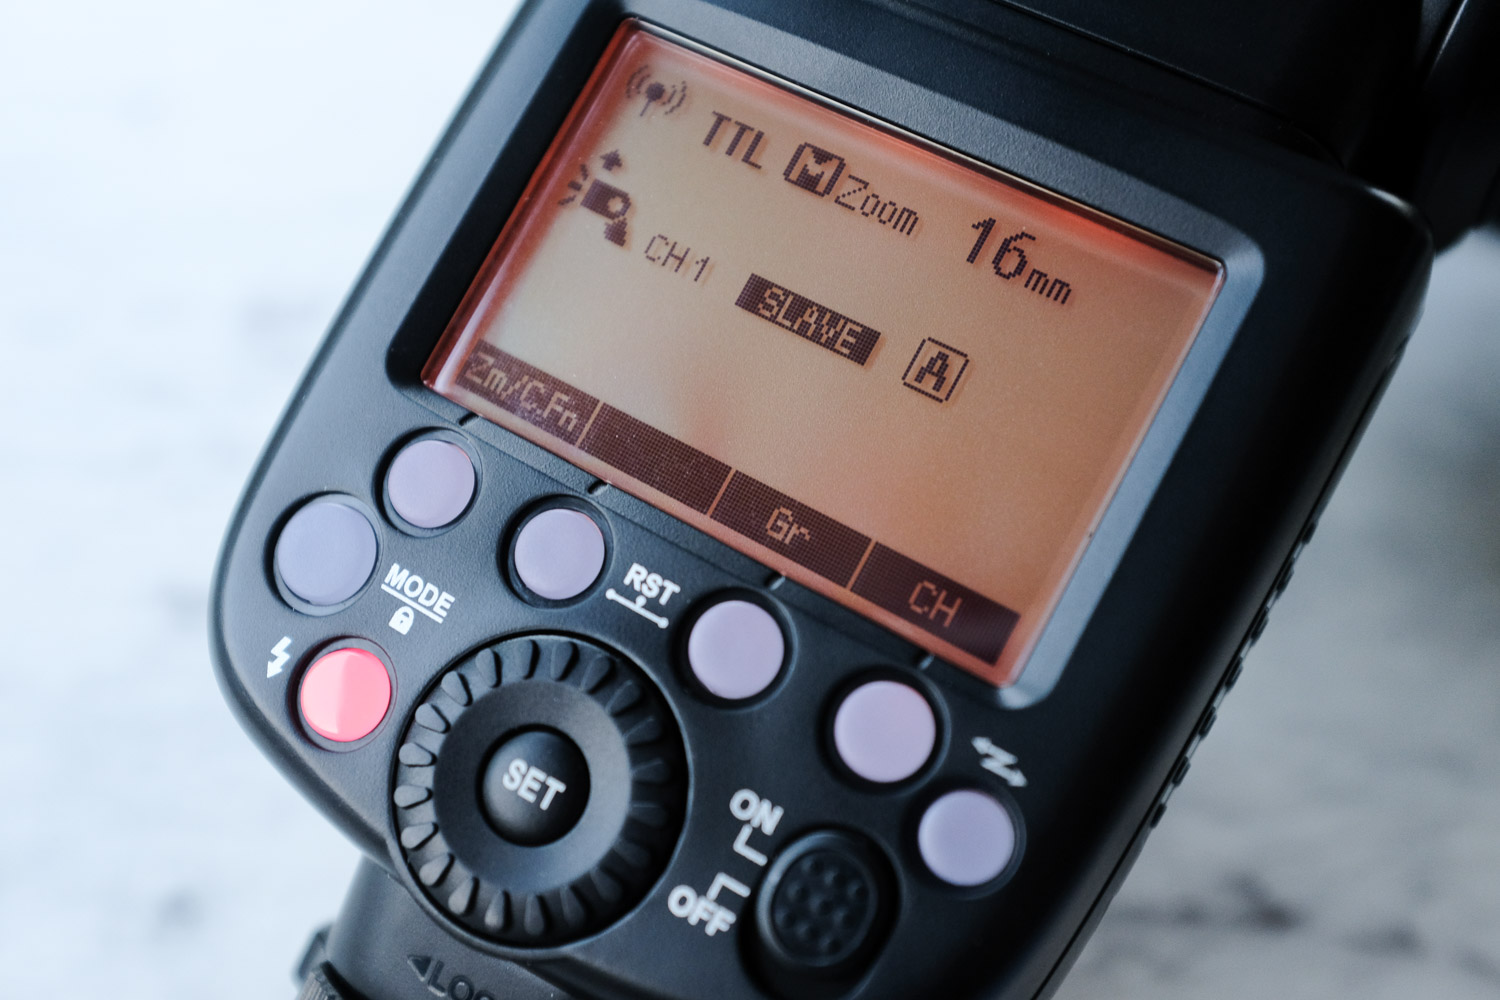 Image: The TT685 in slave mode- note the color of the LCD panel has changed to orange.